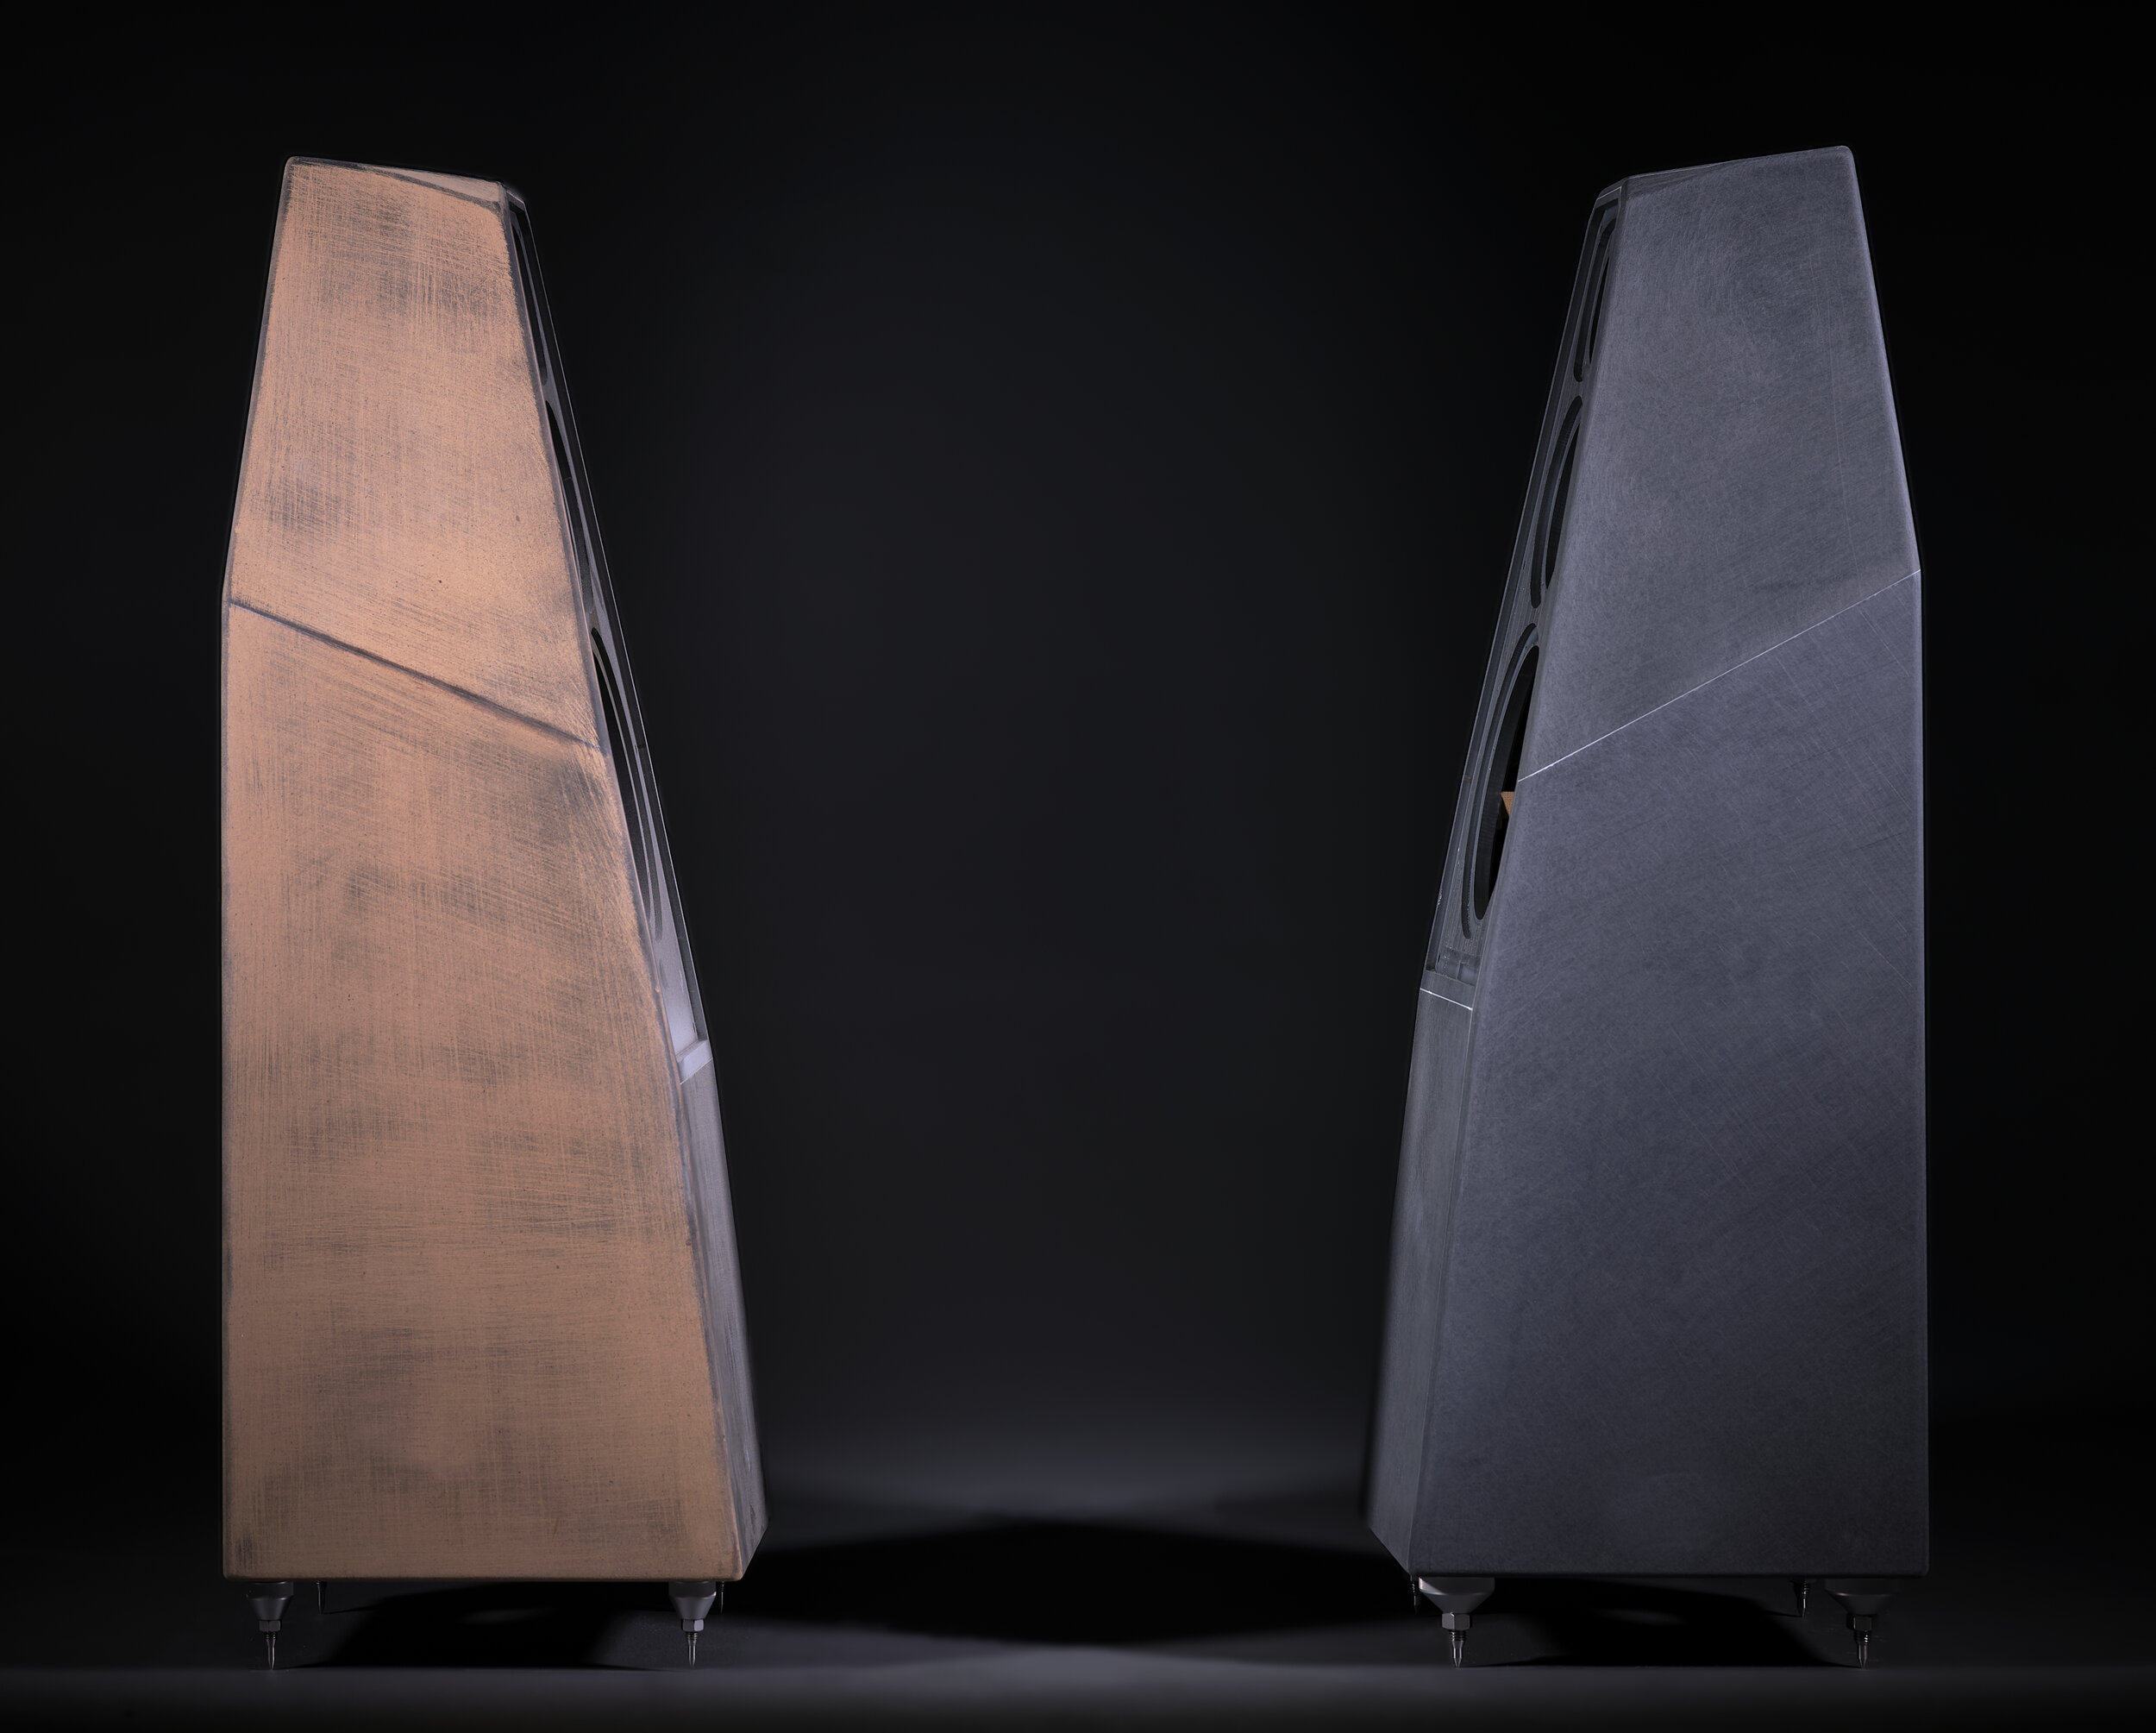 2 sabrinax speakers